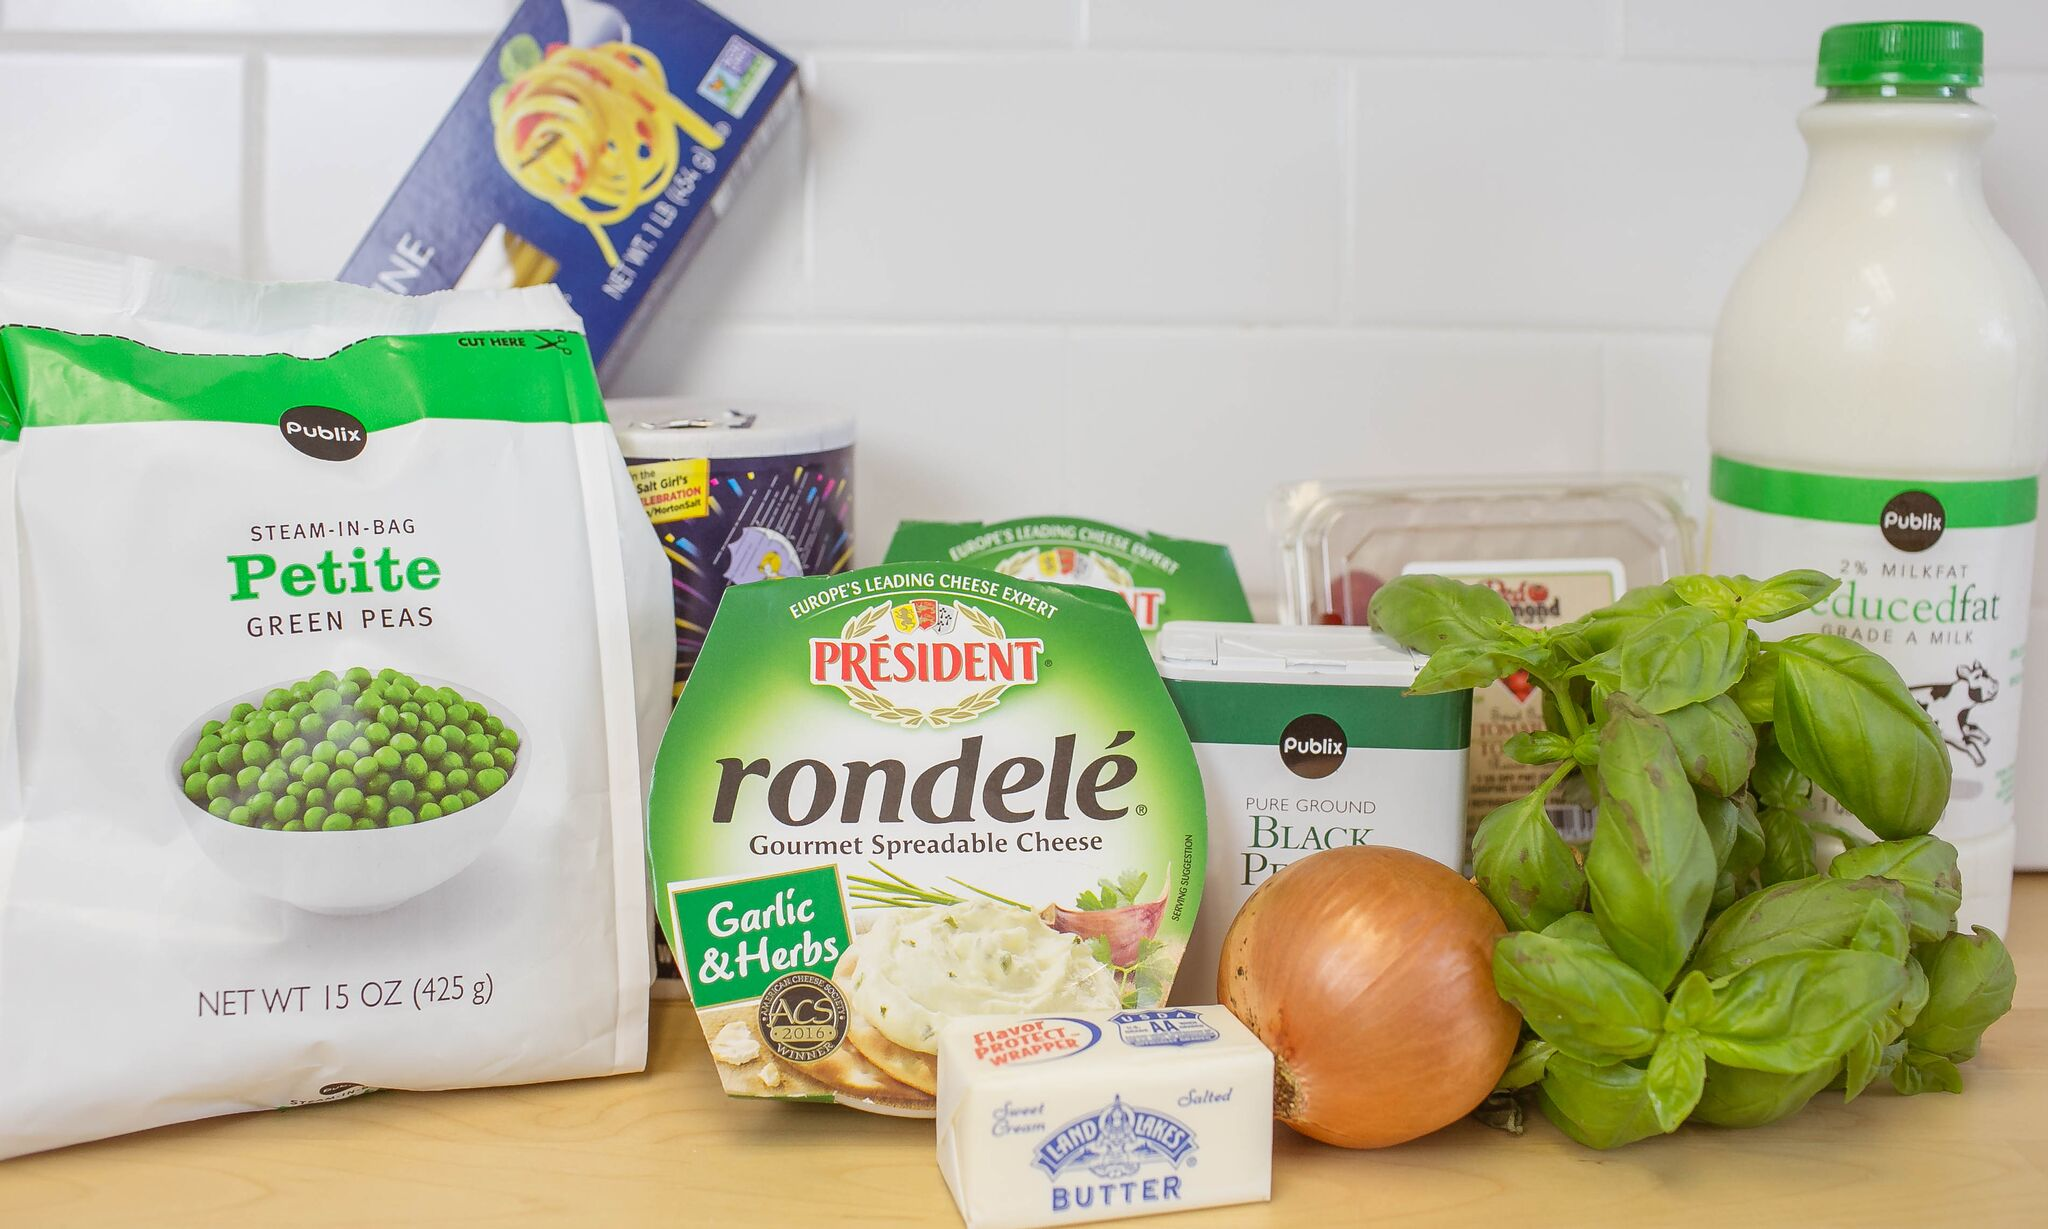 Assemble your ingredients for the pasta: basil, tomatoes, boxed pasta, milk, garlic and herb spreadable cheese, peas, onion, salt, pepper and butter.